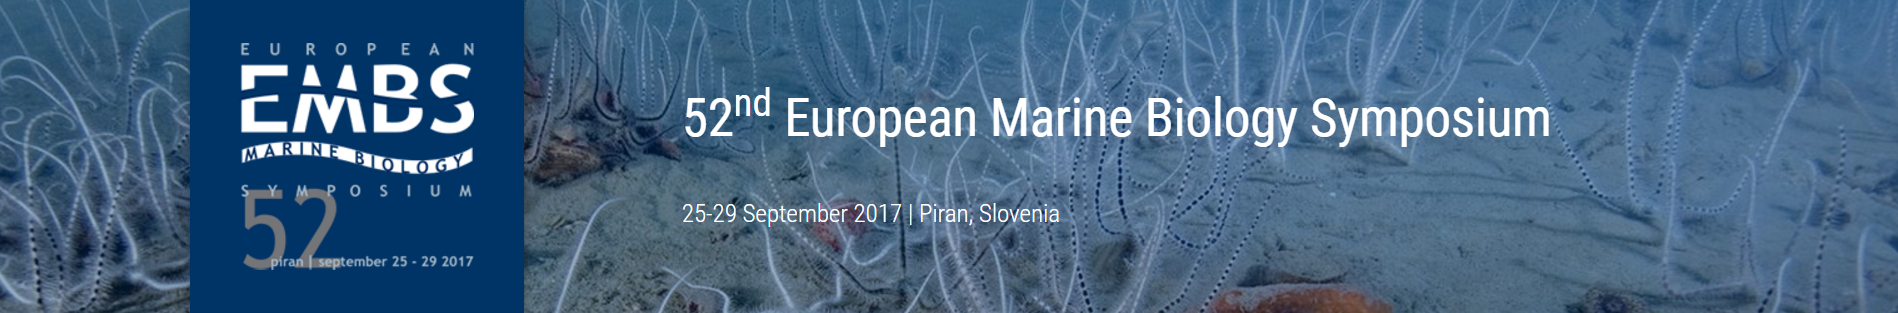 52nd European Marine Biology Symposium